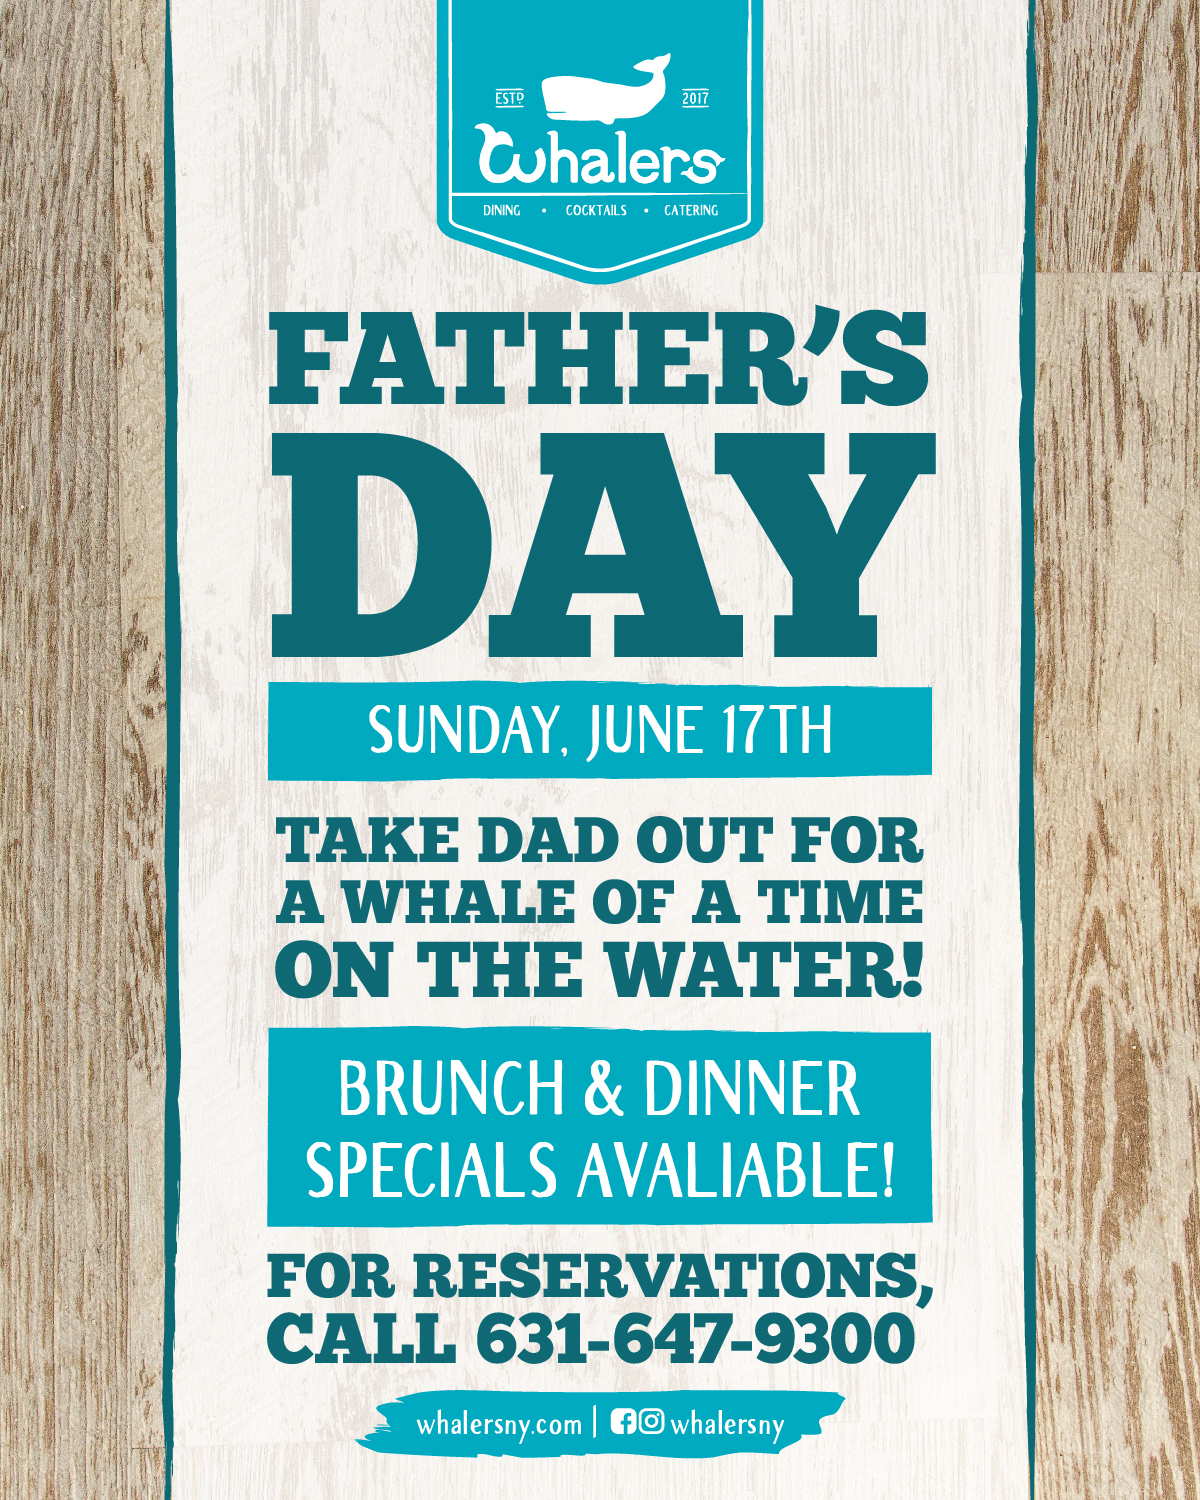 Come celebrate Dad with us from 11:30AM-9PM and enjoy some brunch + dinner specials!